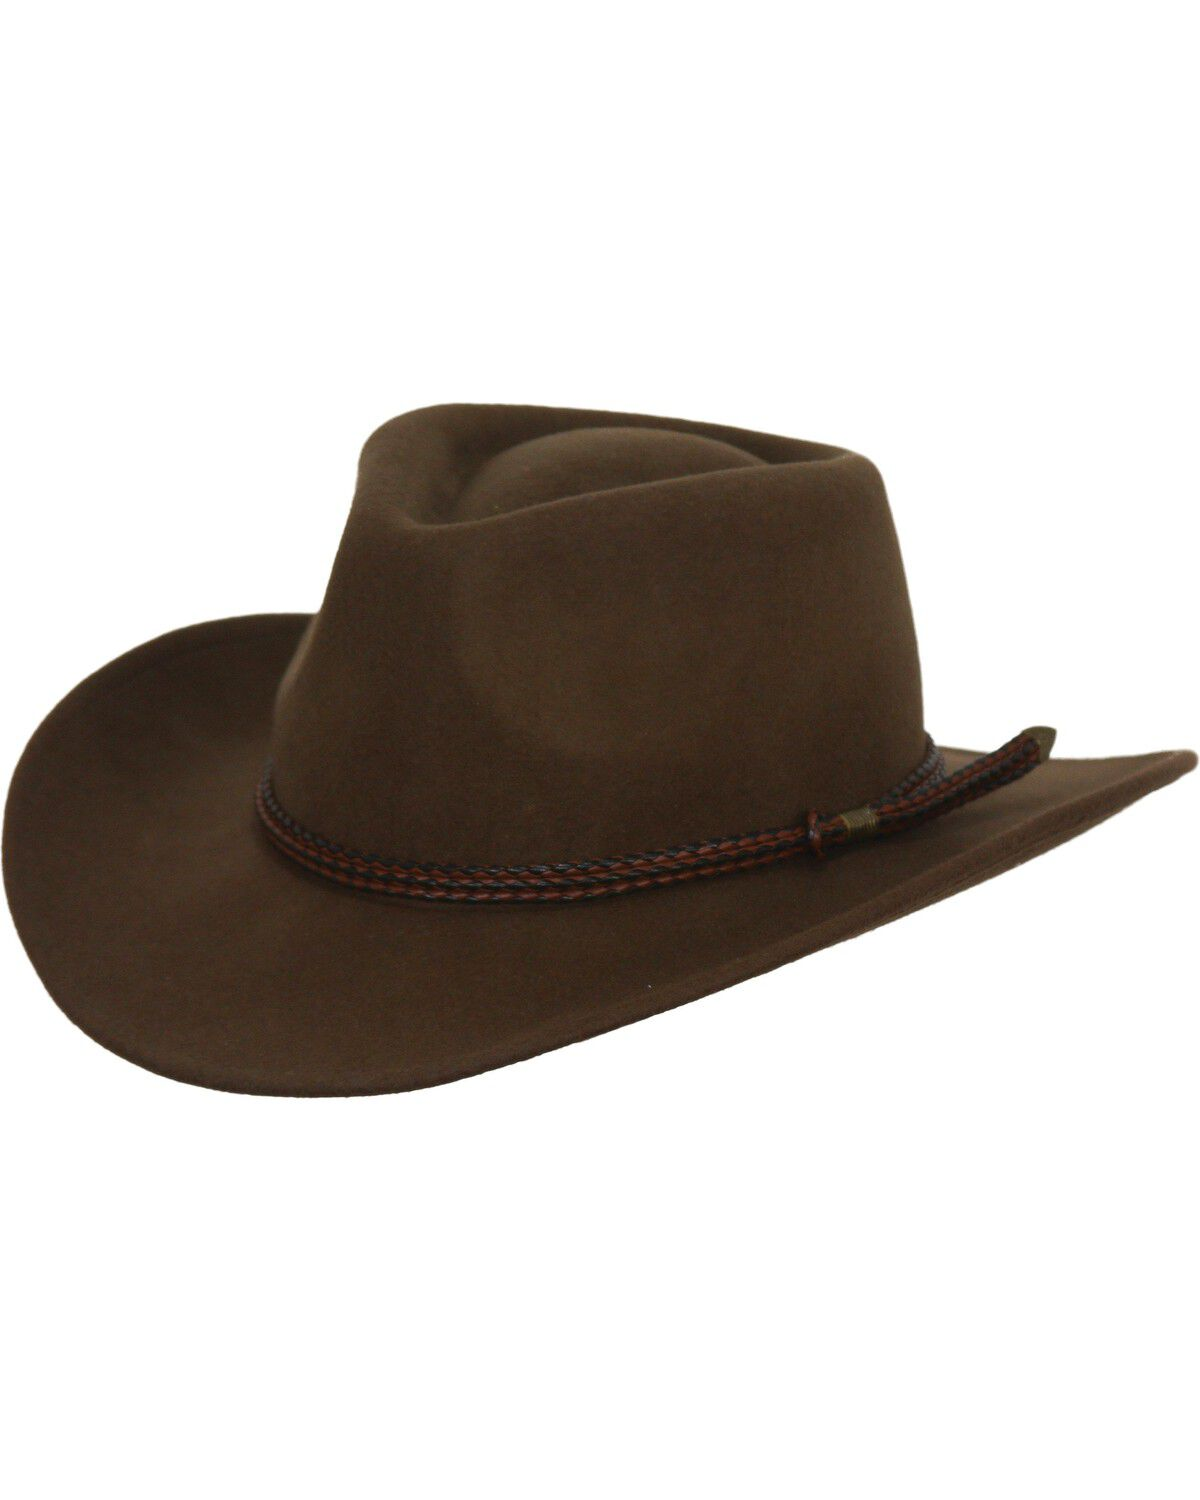 Men s Crushable Hats 7b6cef633ac